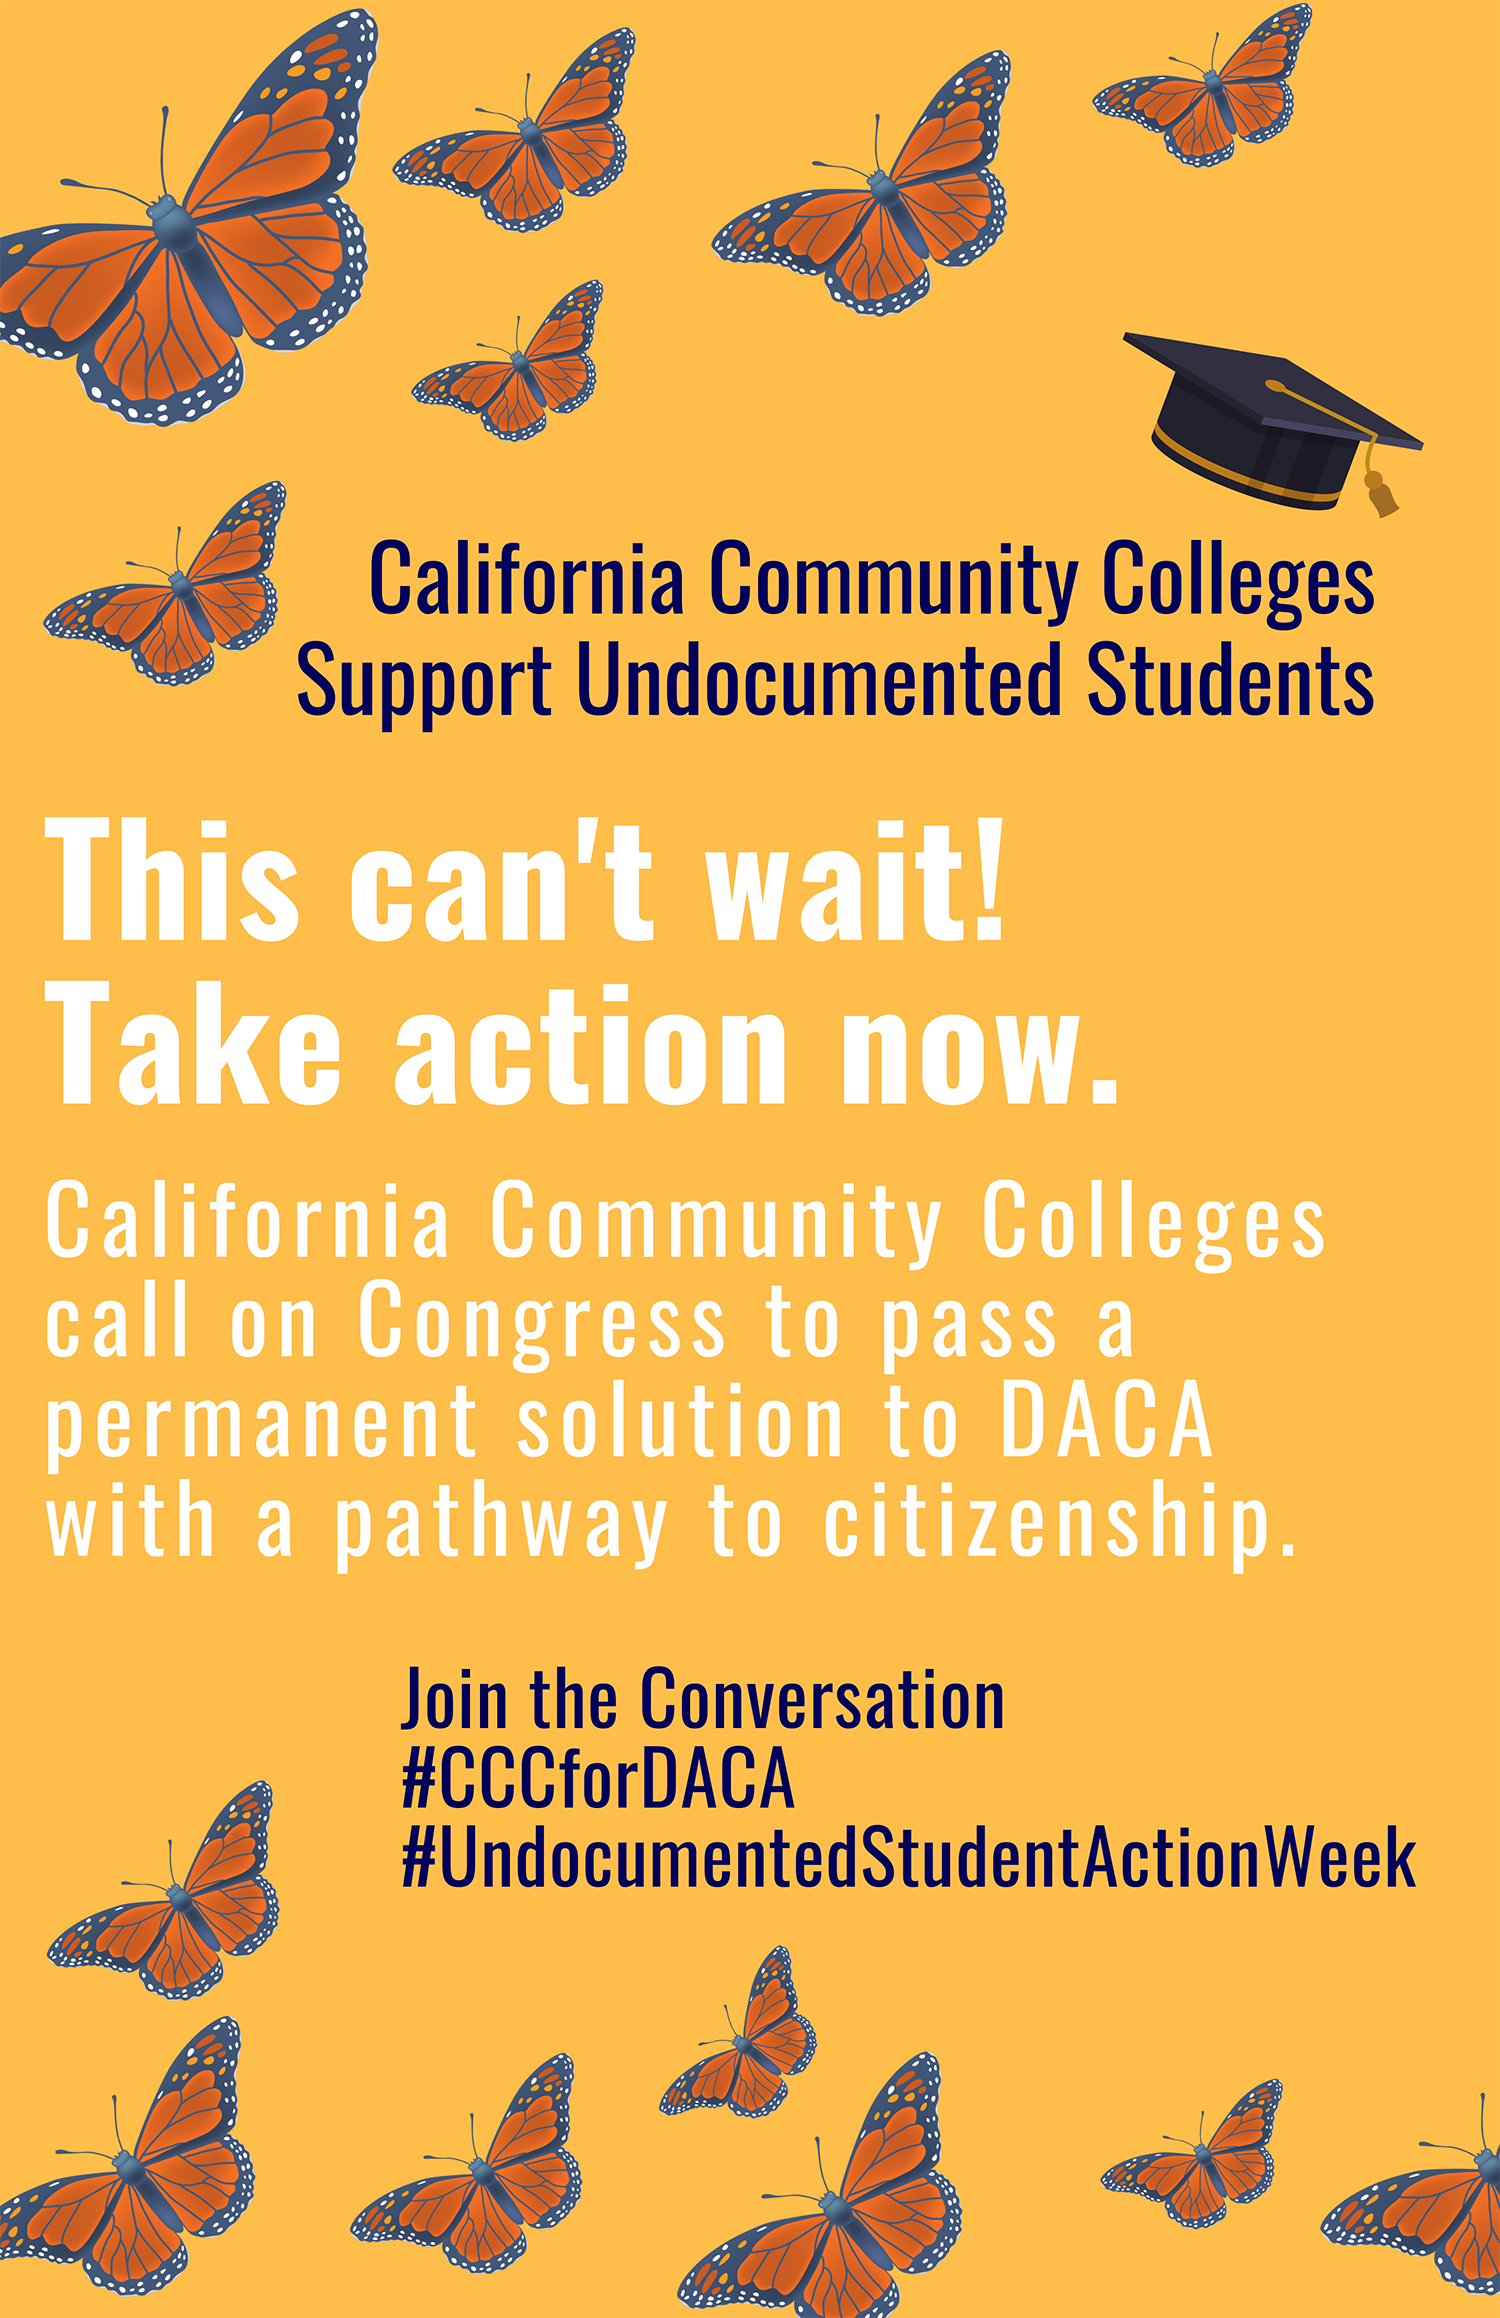 Poster for CCC Undocumented Student Week of Action